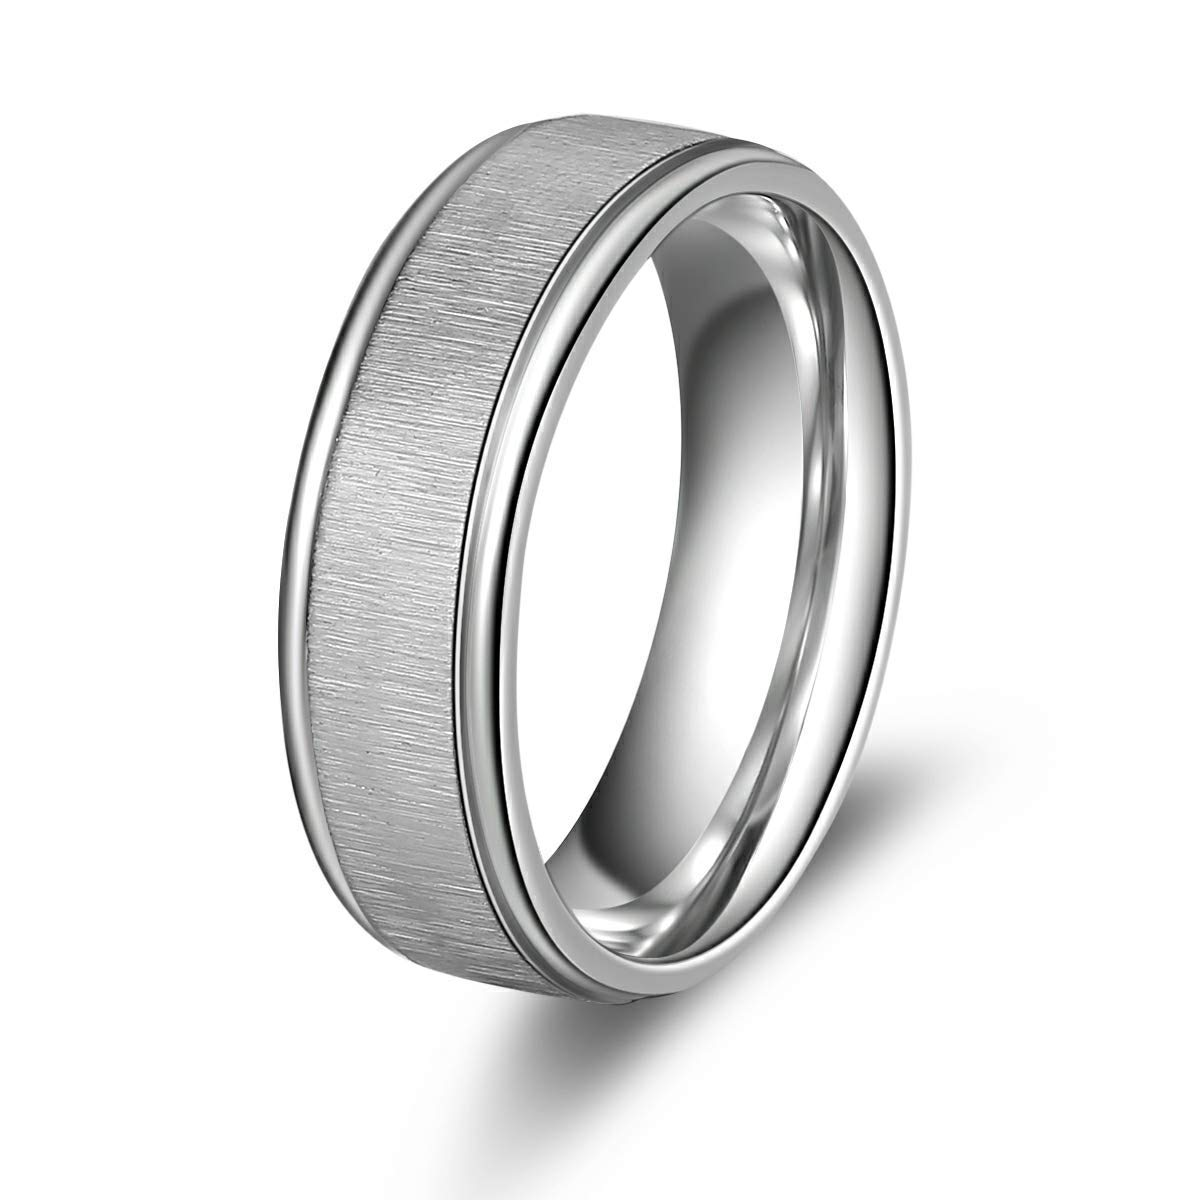 Ello Elli 7mm/8mm Titanium Ring (Silver, 10/7mm)